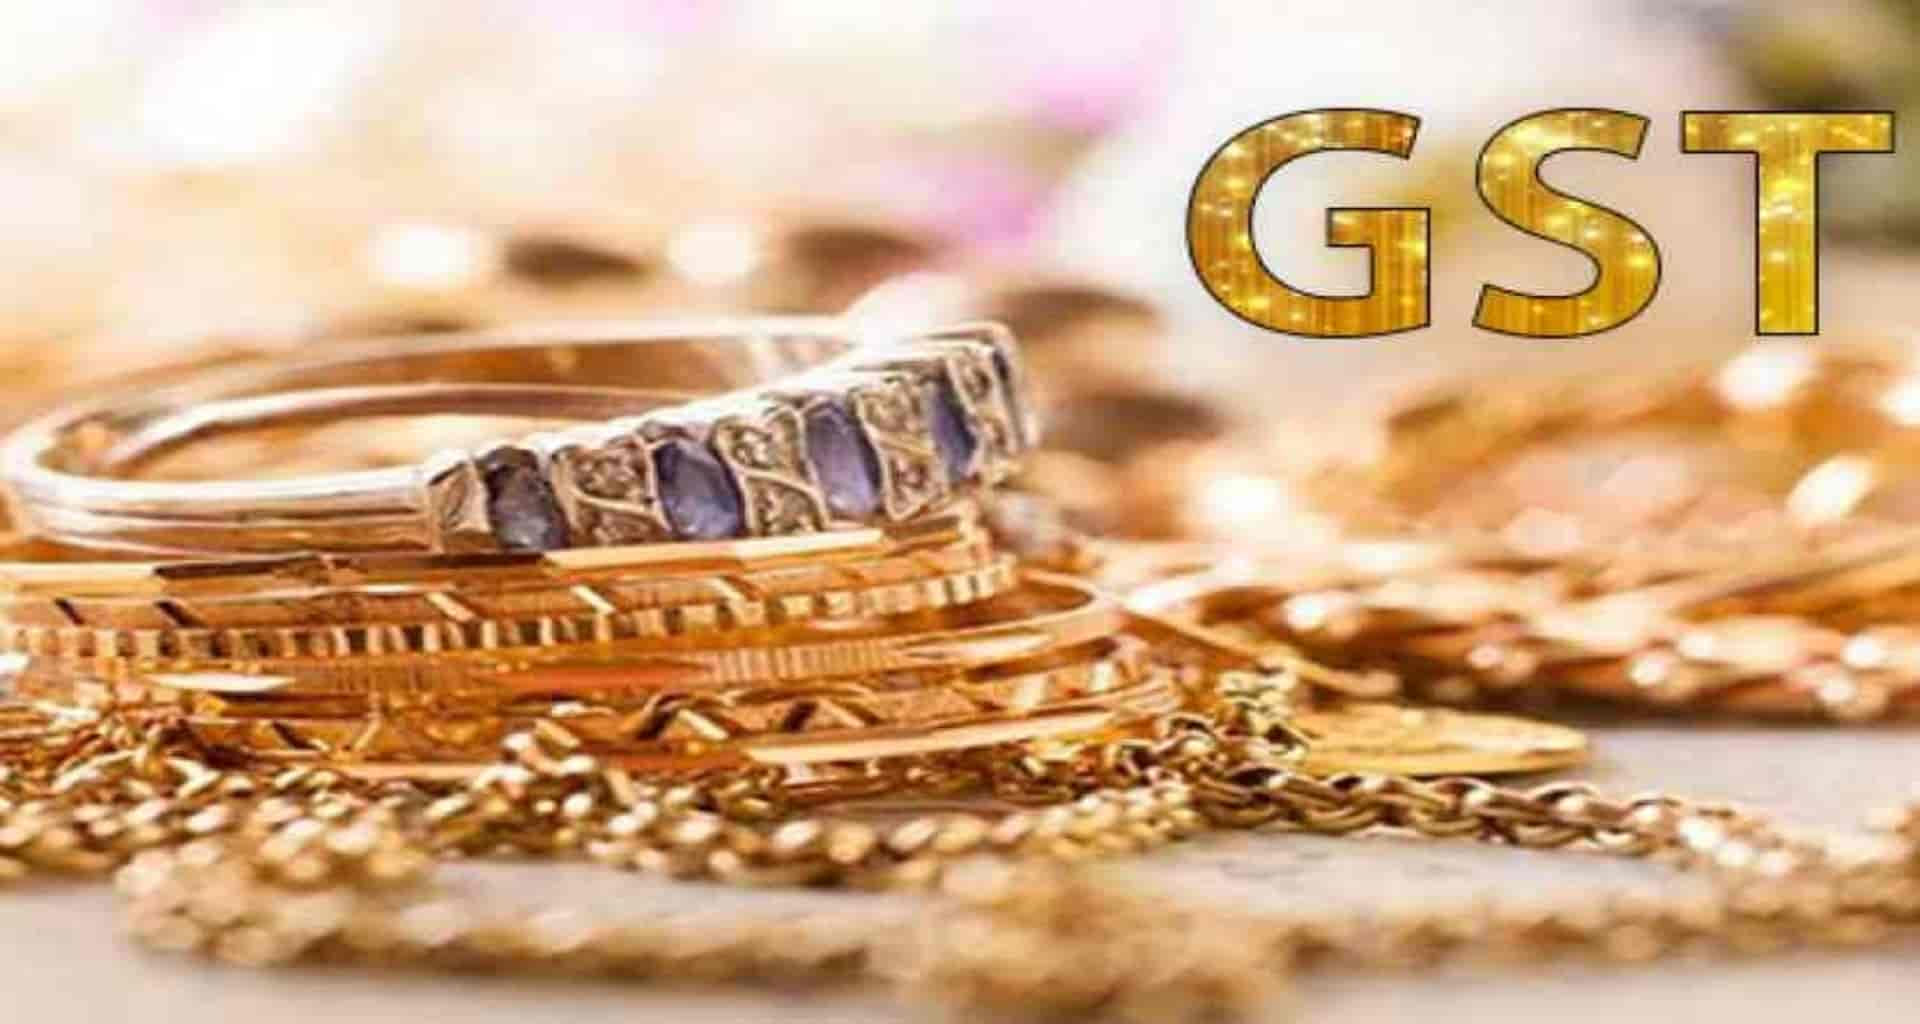 GST on sale of old gold jewelery now